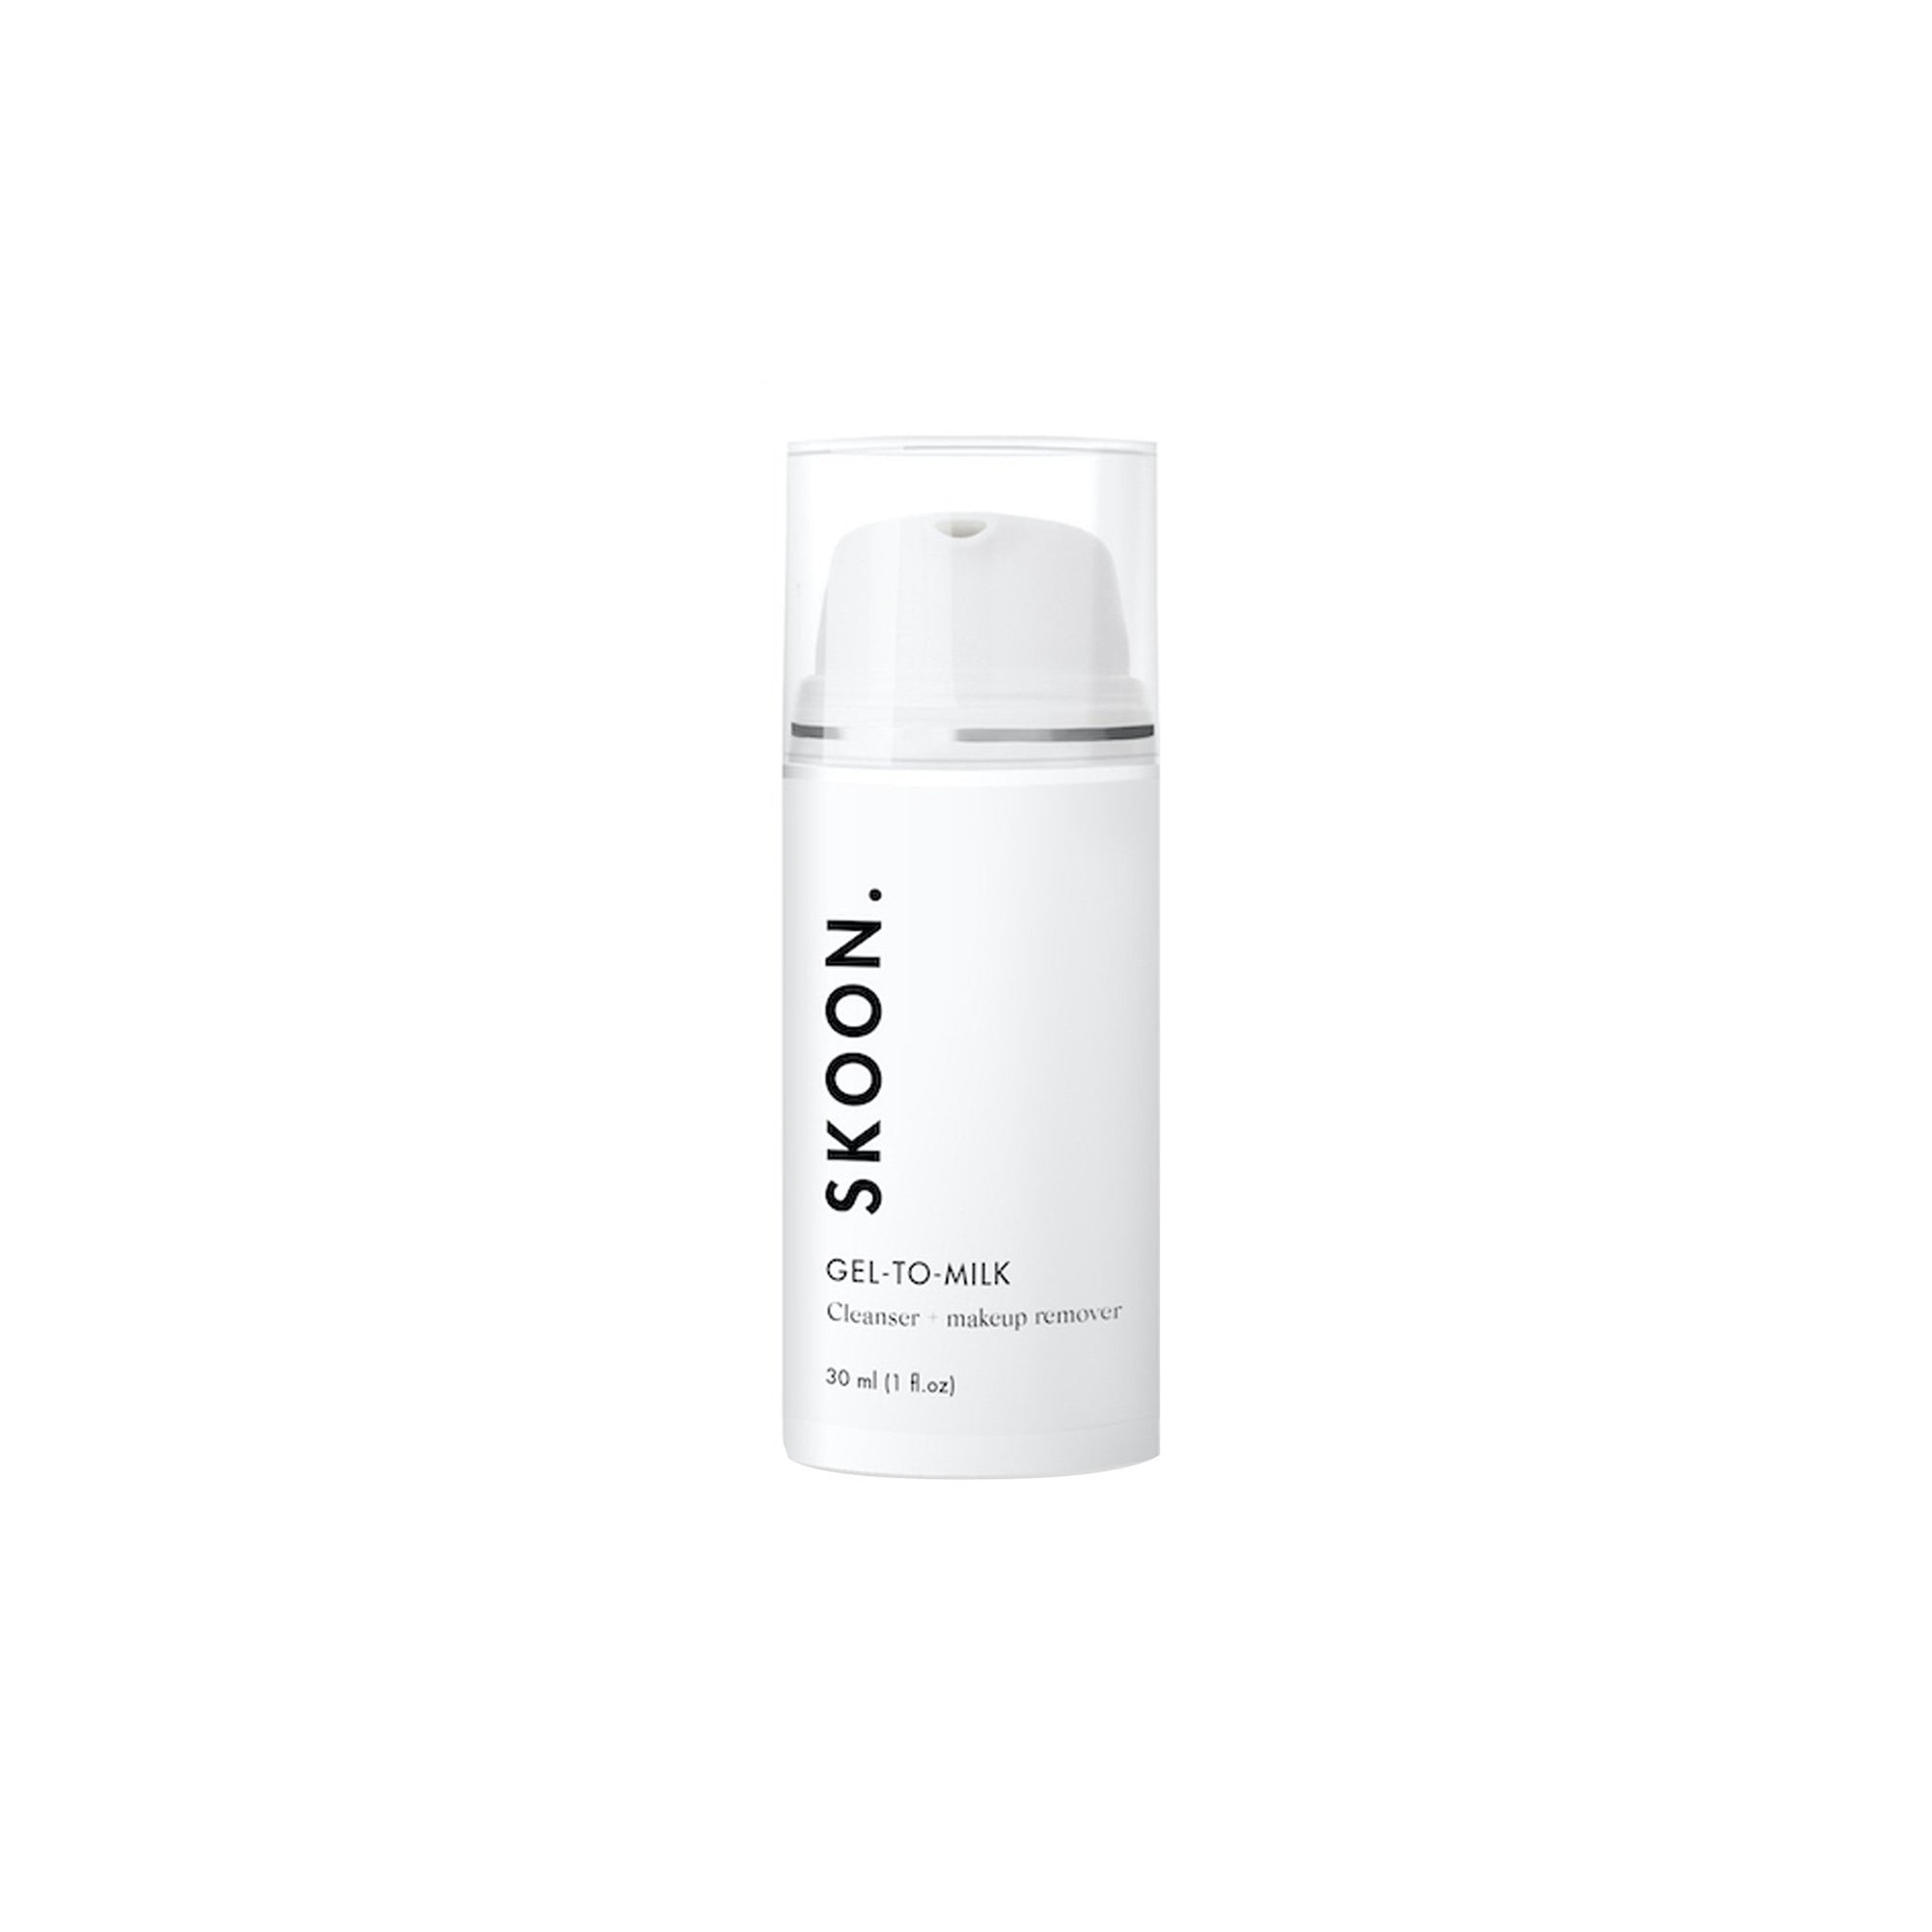 Skoon Gel-To-Milk Cleanser & Make-Up Remover 30ml